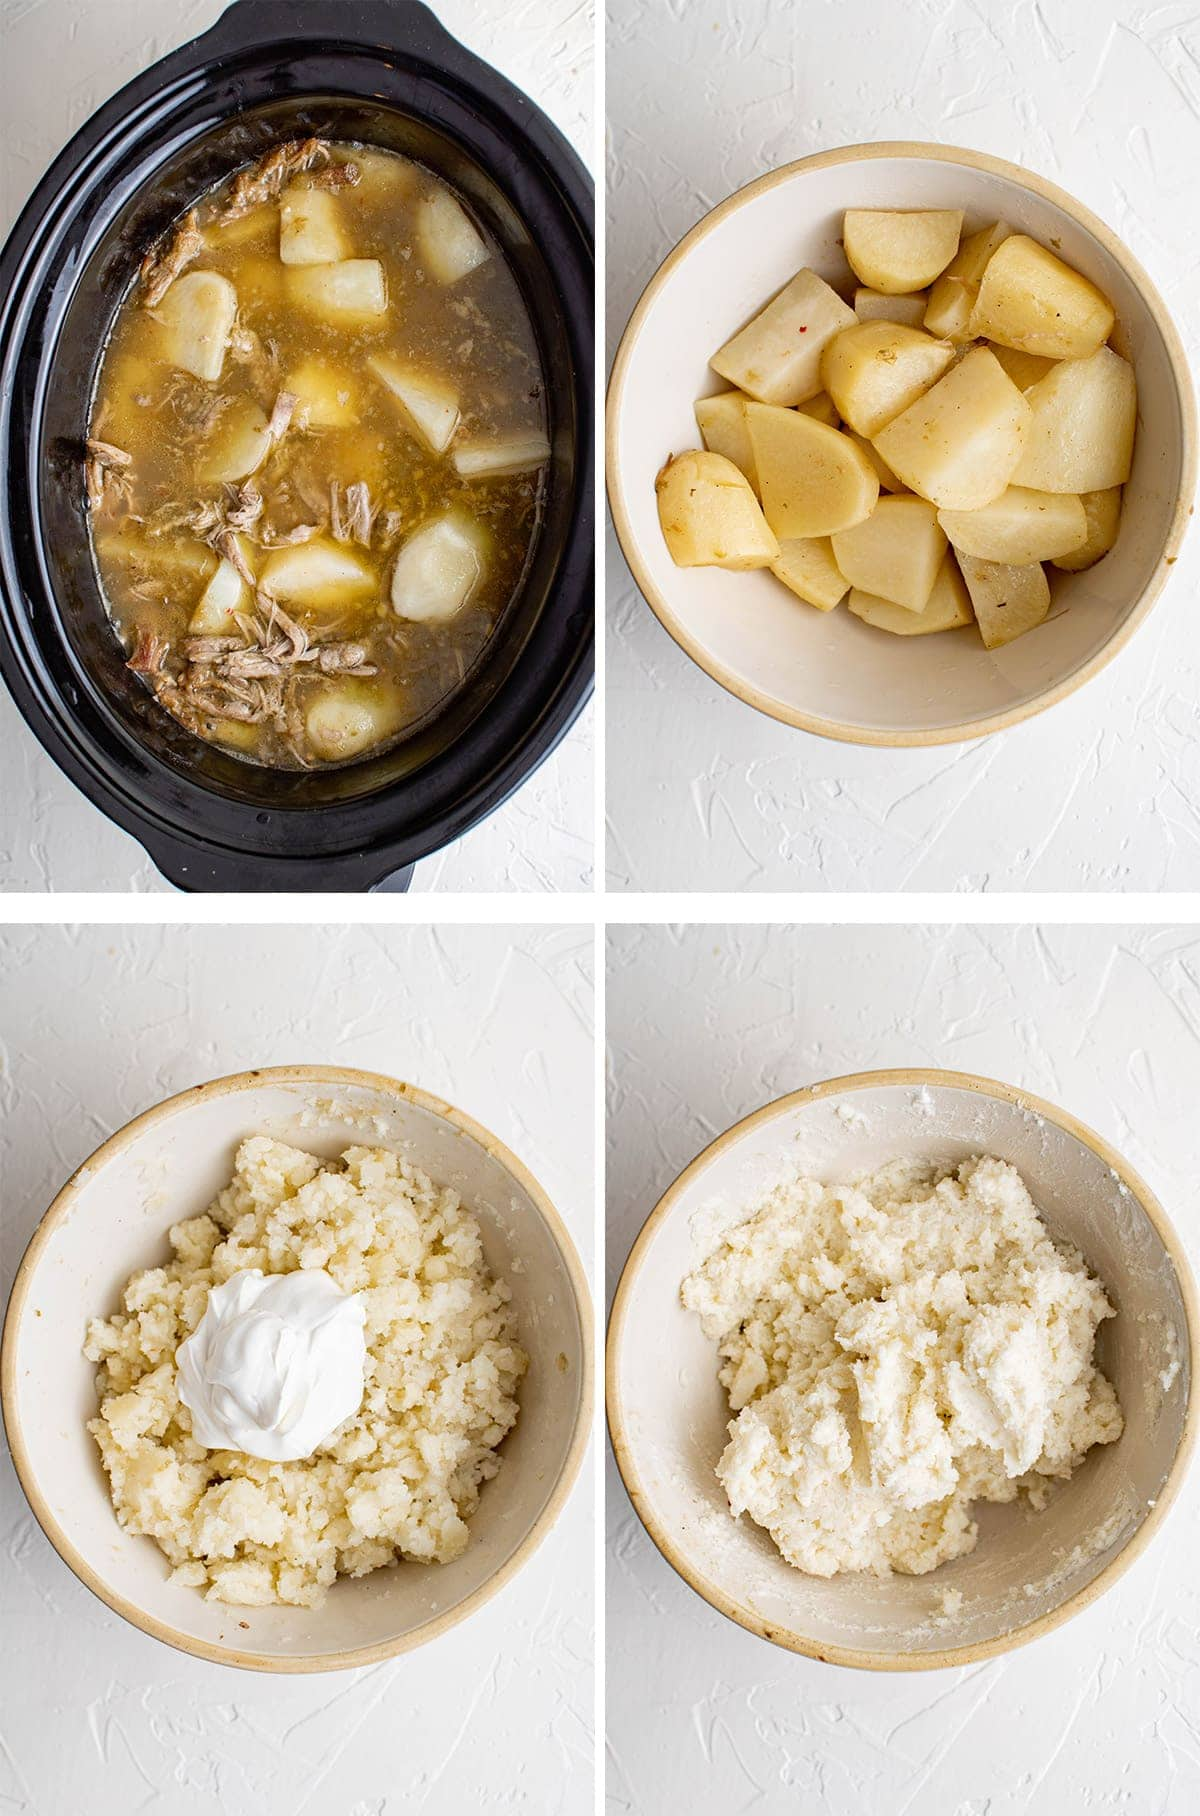 collage of images showing how to make mashed potatoes in the slow cooker with chile verde